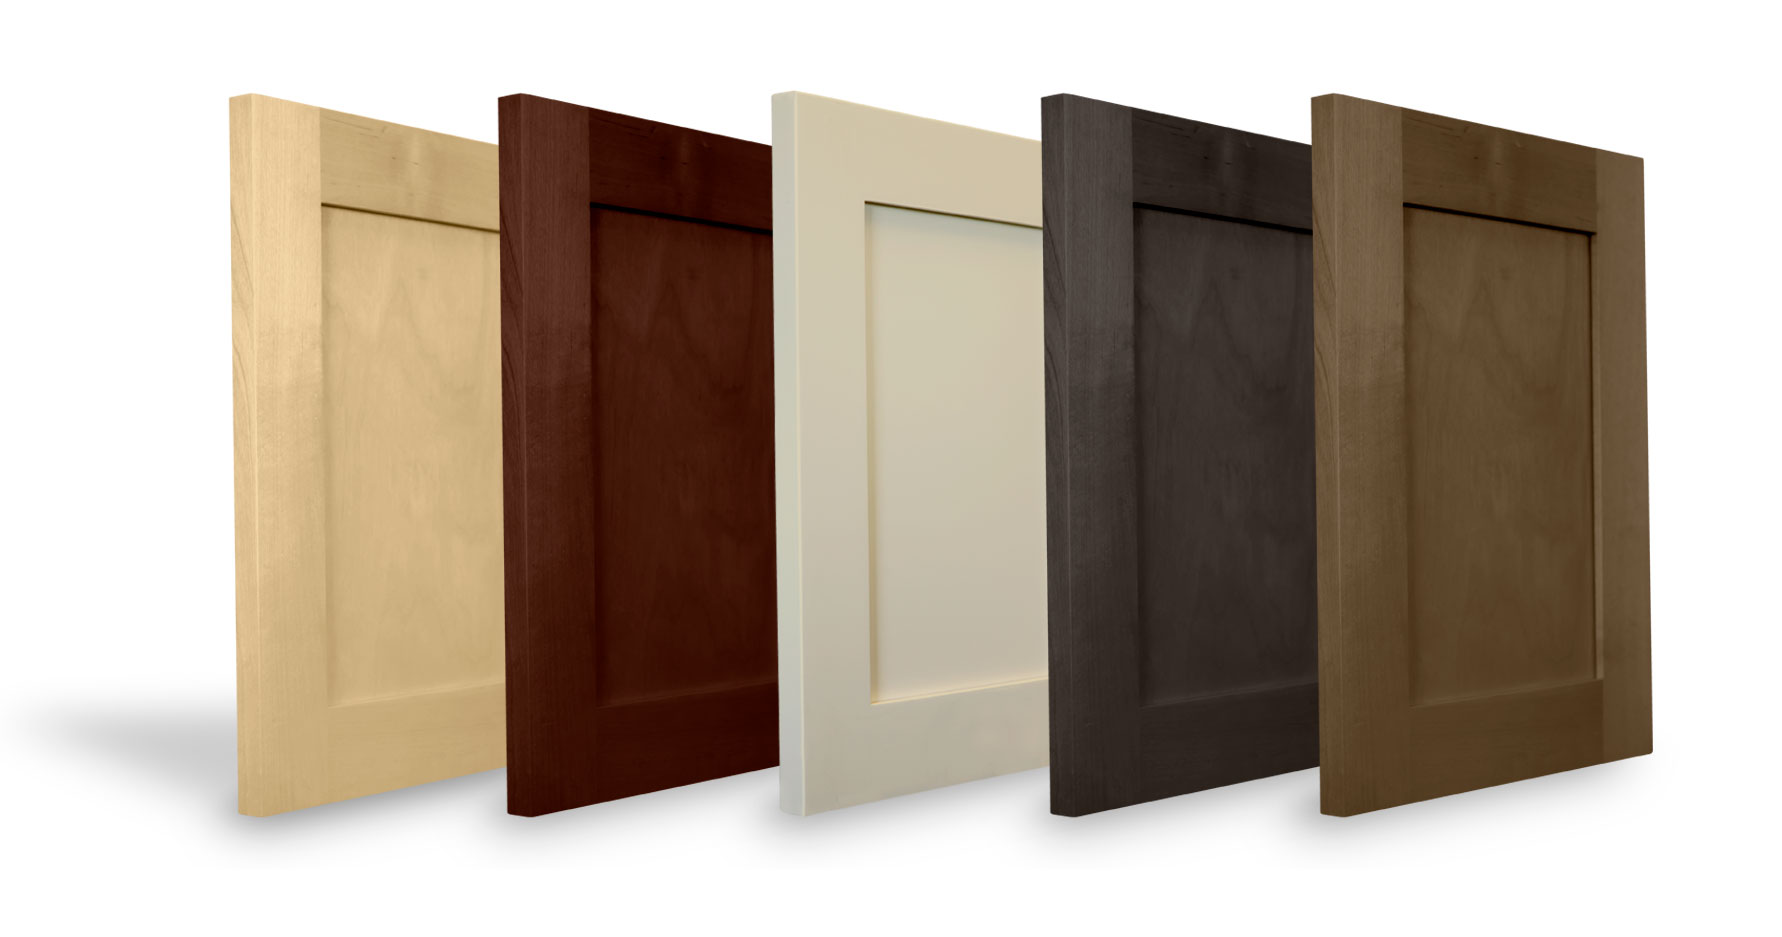 If youu0027d like to see one of our doors up close donu0027t hesitate to ask for a s&le door. Just let us know what doorstyle you like in any wood species or ...  sc 1 st  Founderu0027s Choice Cabinetry & Cabinet Doorstyles - Founderu0027s Choice Cabinetry